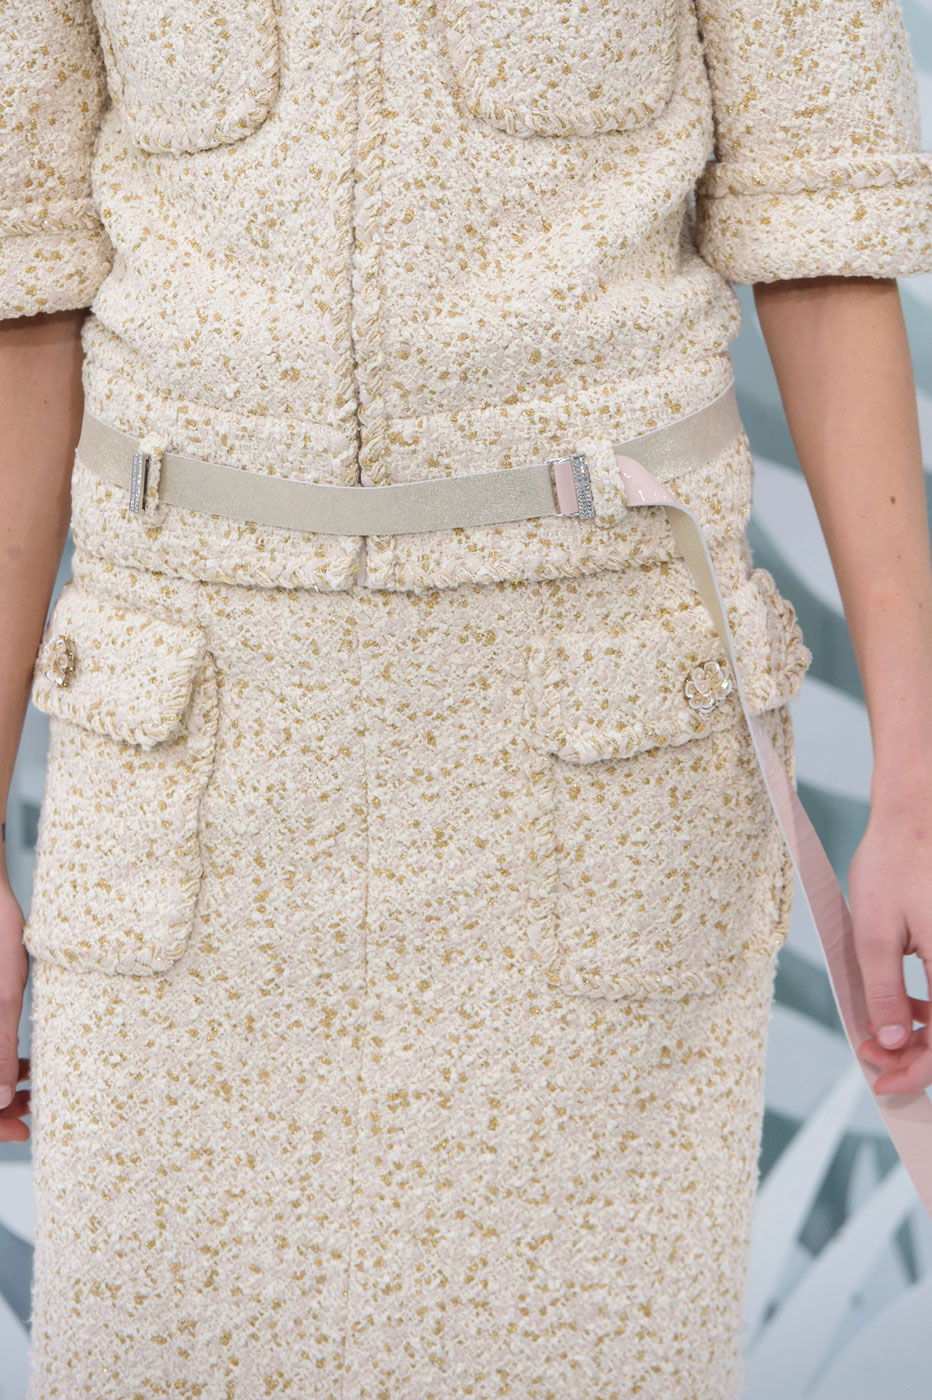 Chanel-fashion-runway-show-close-ups-haute-couture-paris-spring-summer-2015-the-impression-034